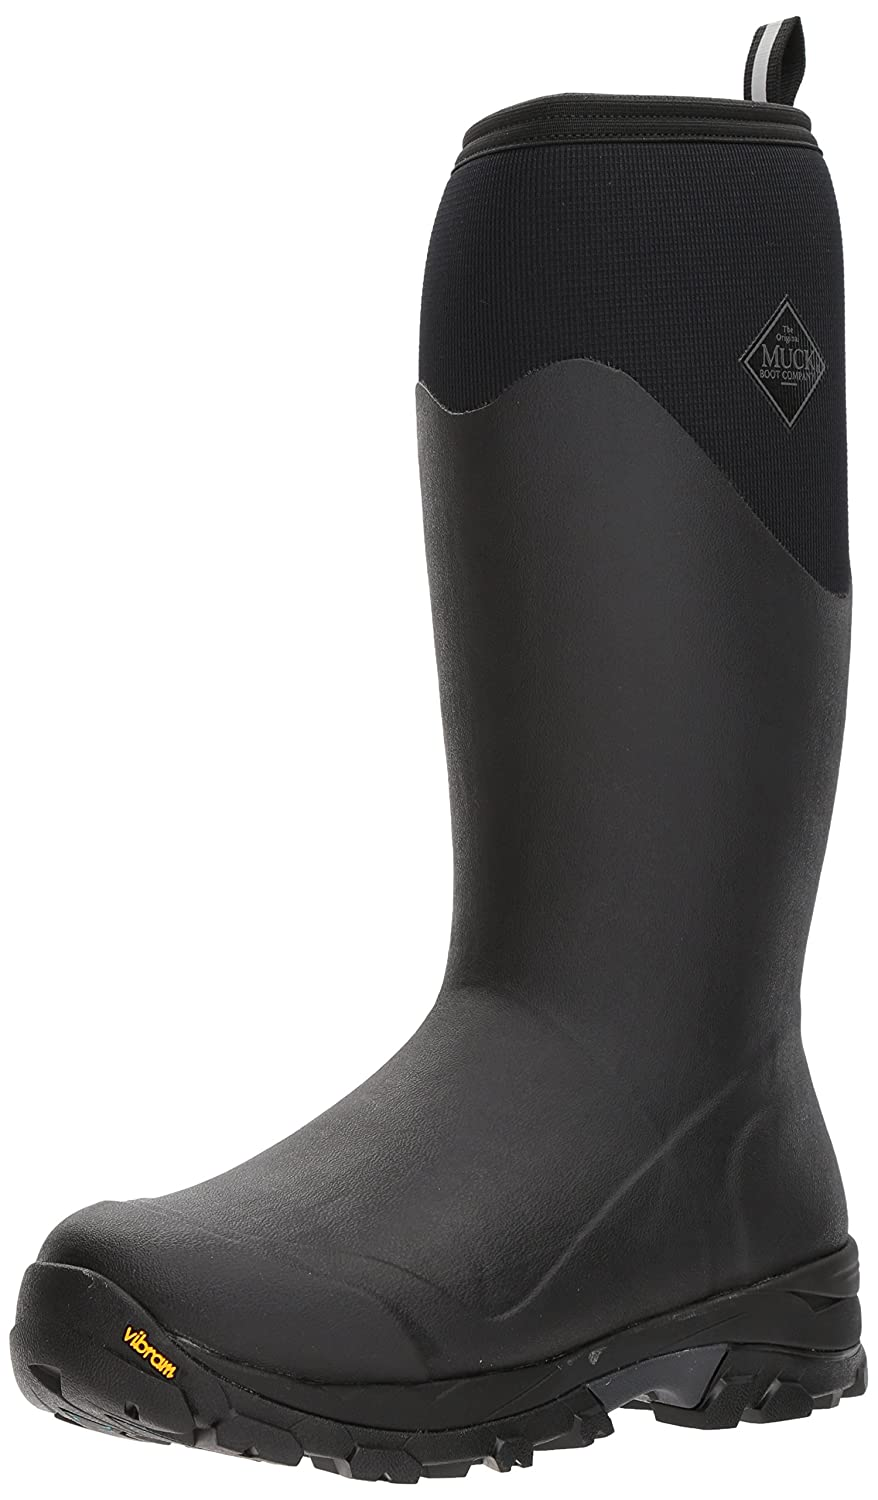 Muck Boot Arctic Ice Extreme Conditions Tall Rubber Men's Winter Boot with Arctic Grip Outsole